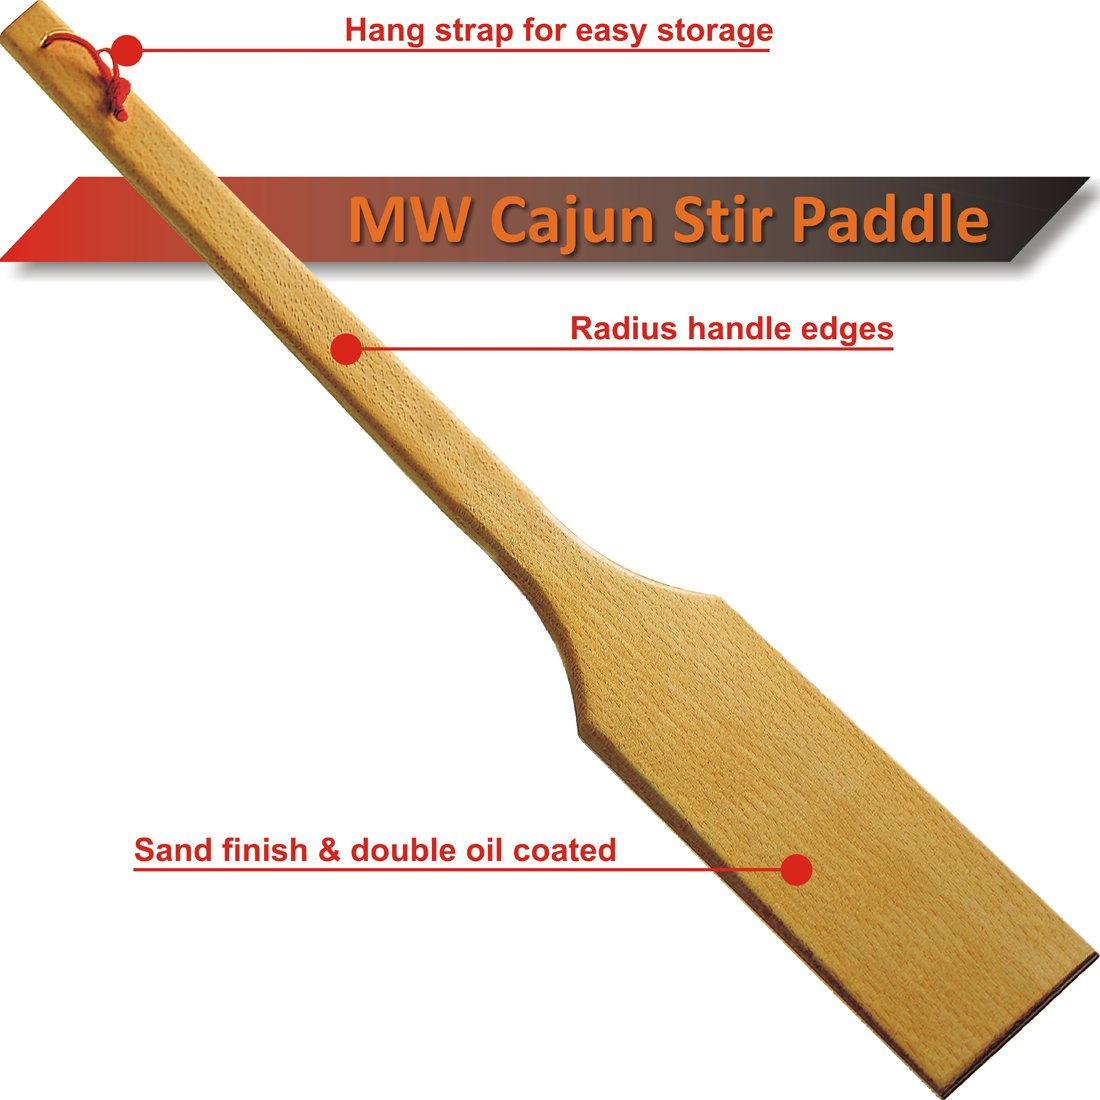 MW Cajun Stir Paddle | Crawfish Boil Paddle | Sand Finished | Double Linseed Oil Finish | Hard Beech | 32 Inch